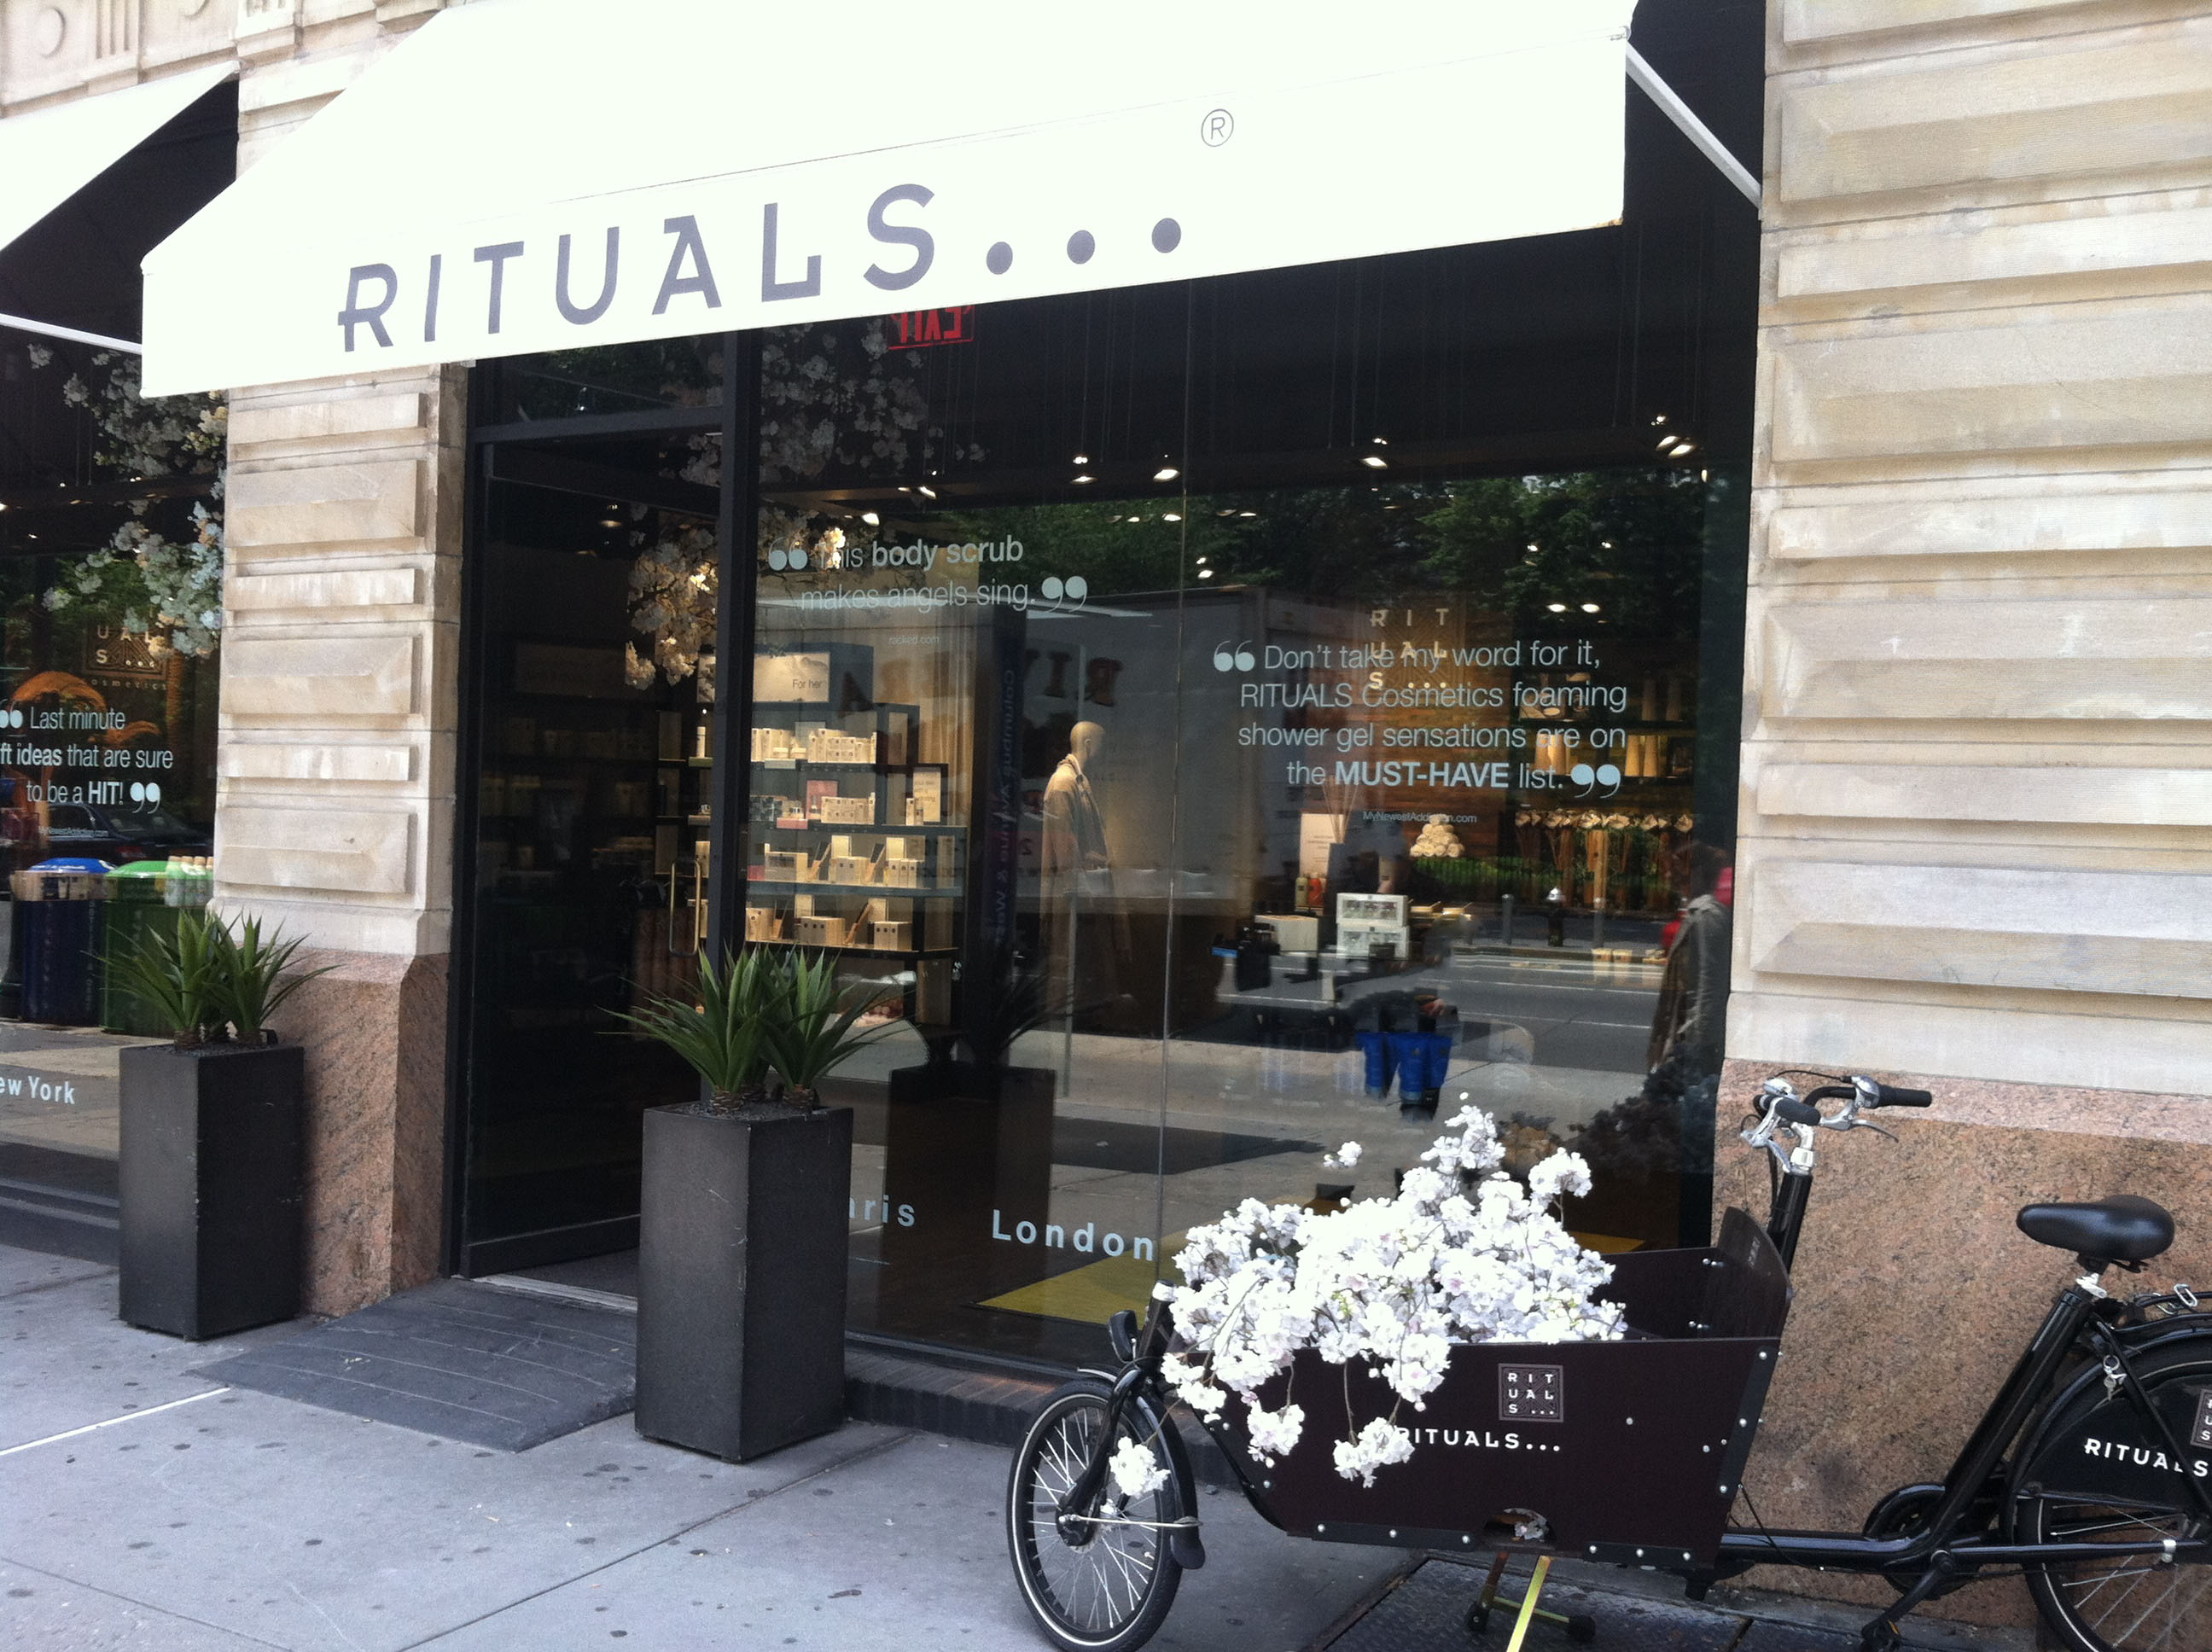 The Upper West Side store